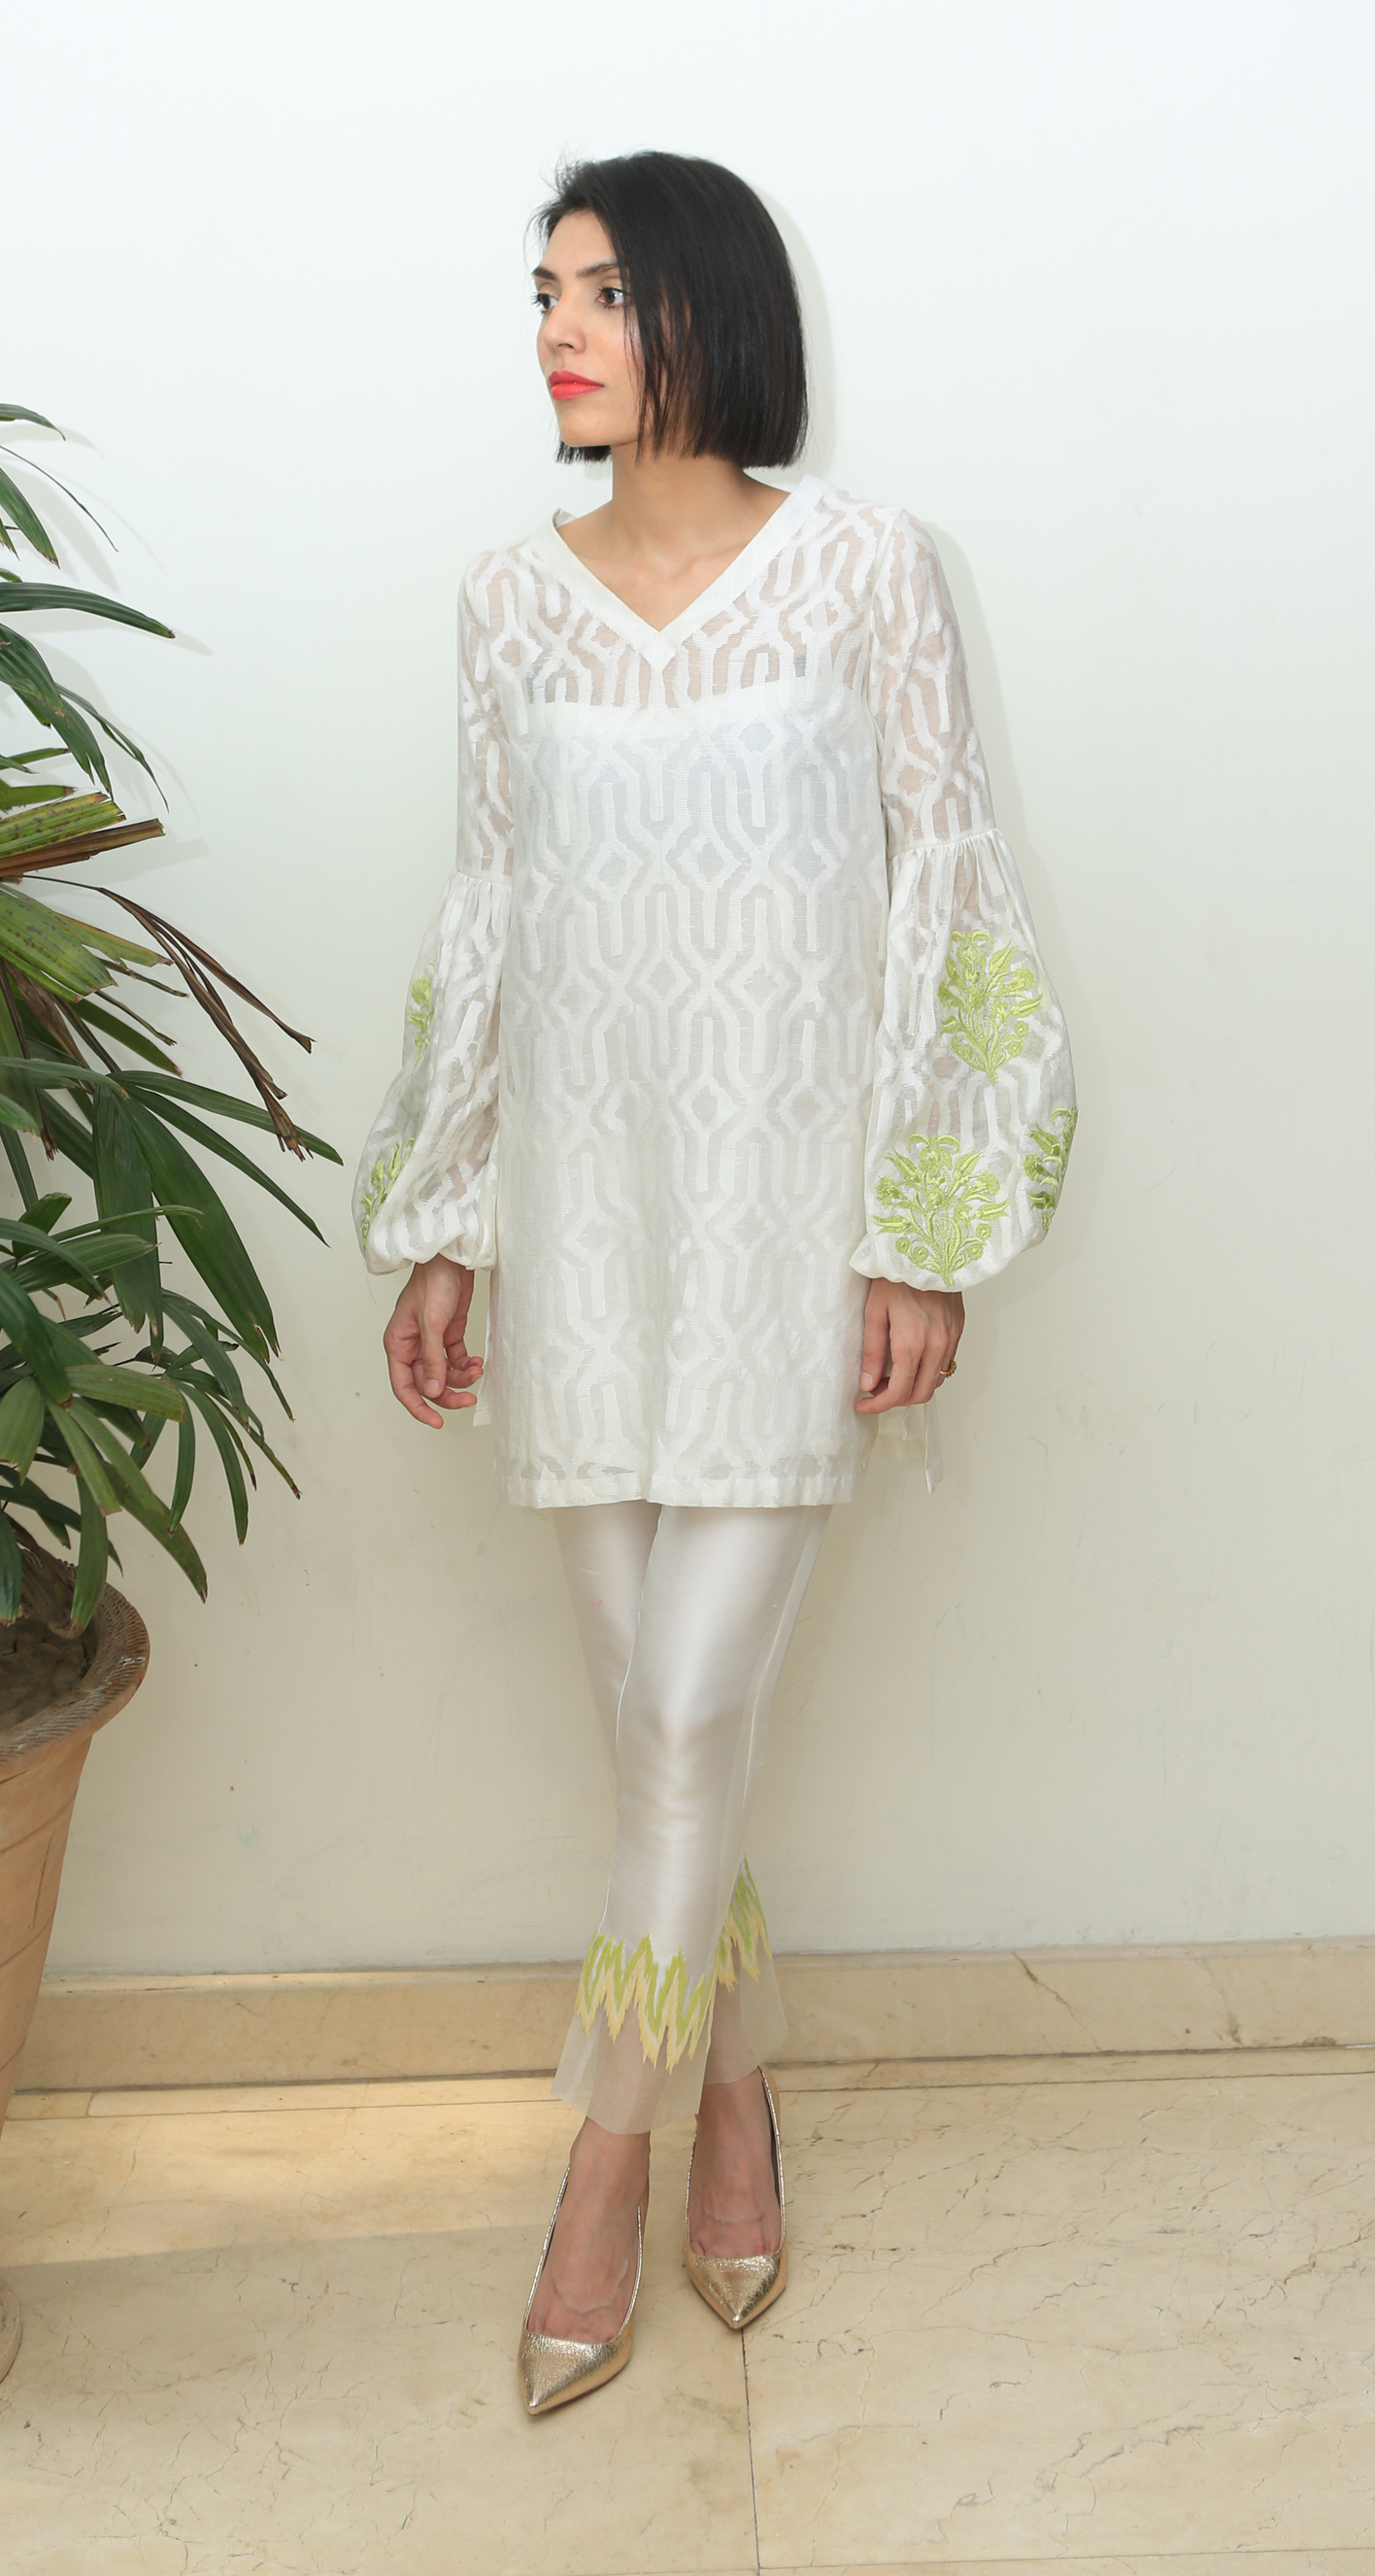 From the sheer fabrics to the hints of neon for a pop of colour, this number is all about the understated glam